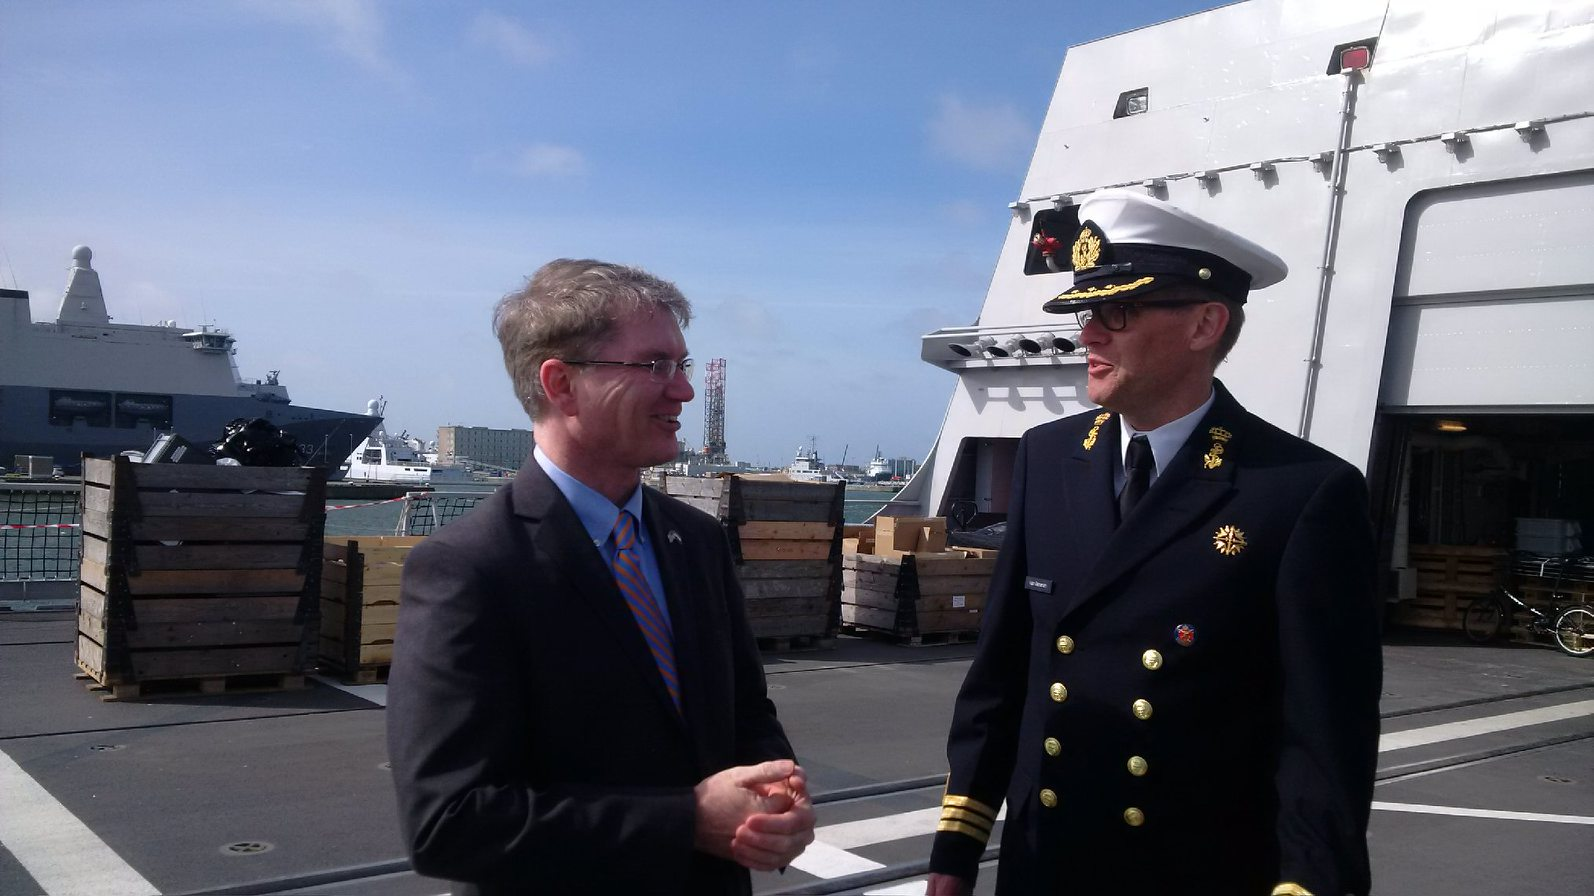 Royal Netherlands Navy Welcomes U S Embassy Team To Den Helder U S Embassy And Consulate In The Netherlands